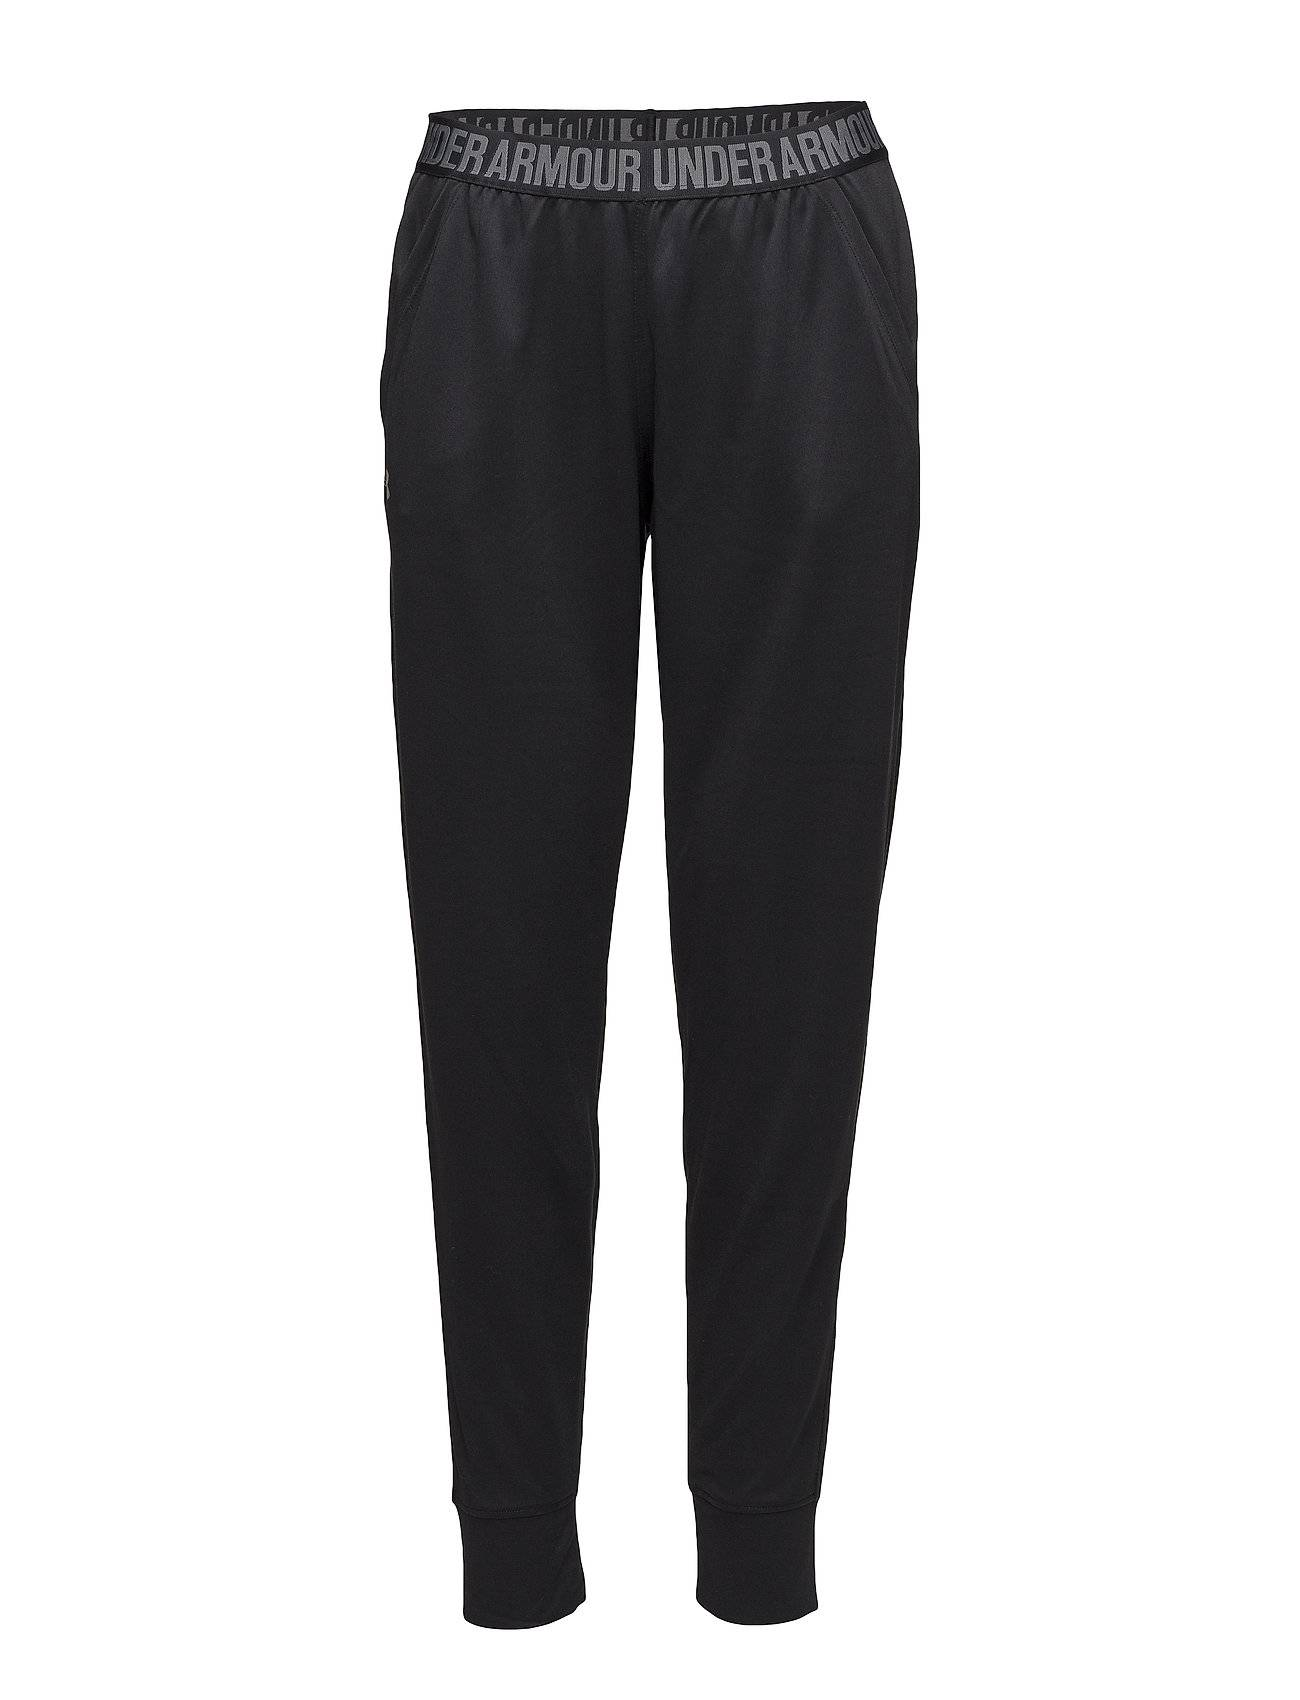 Under Armour Play Up Pant